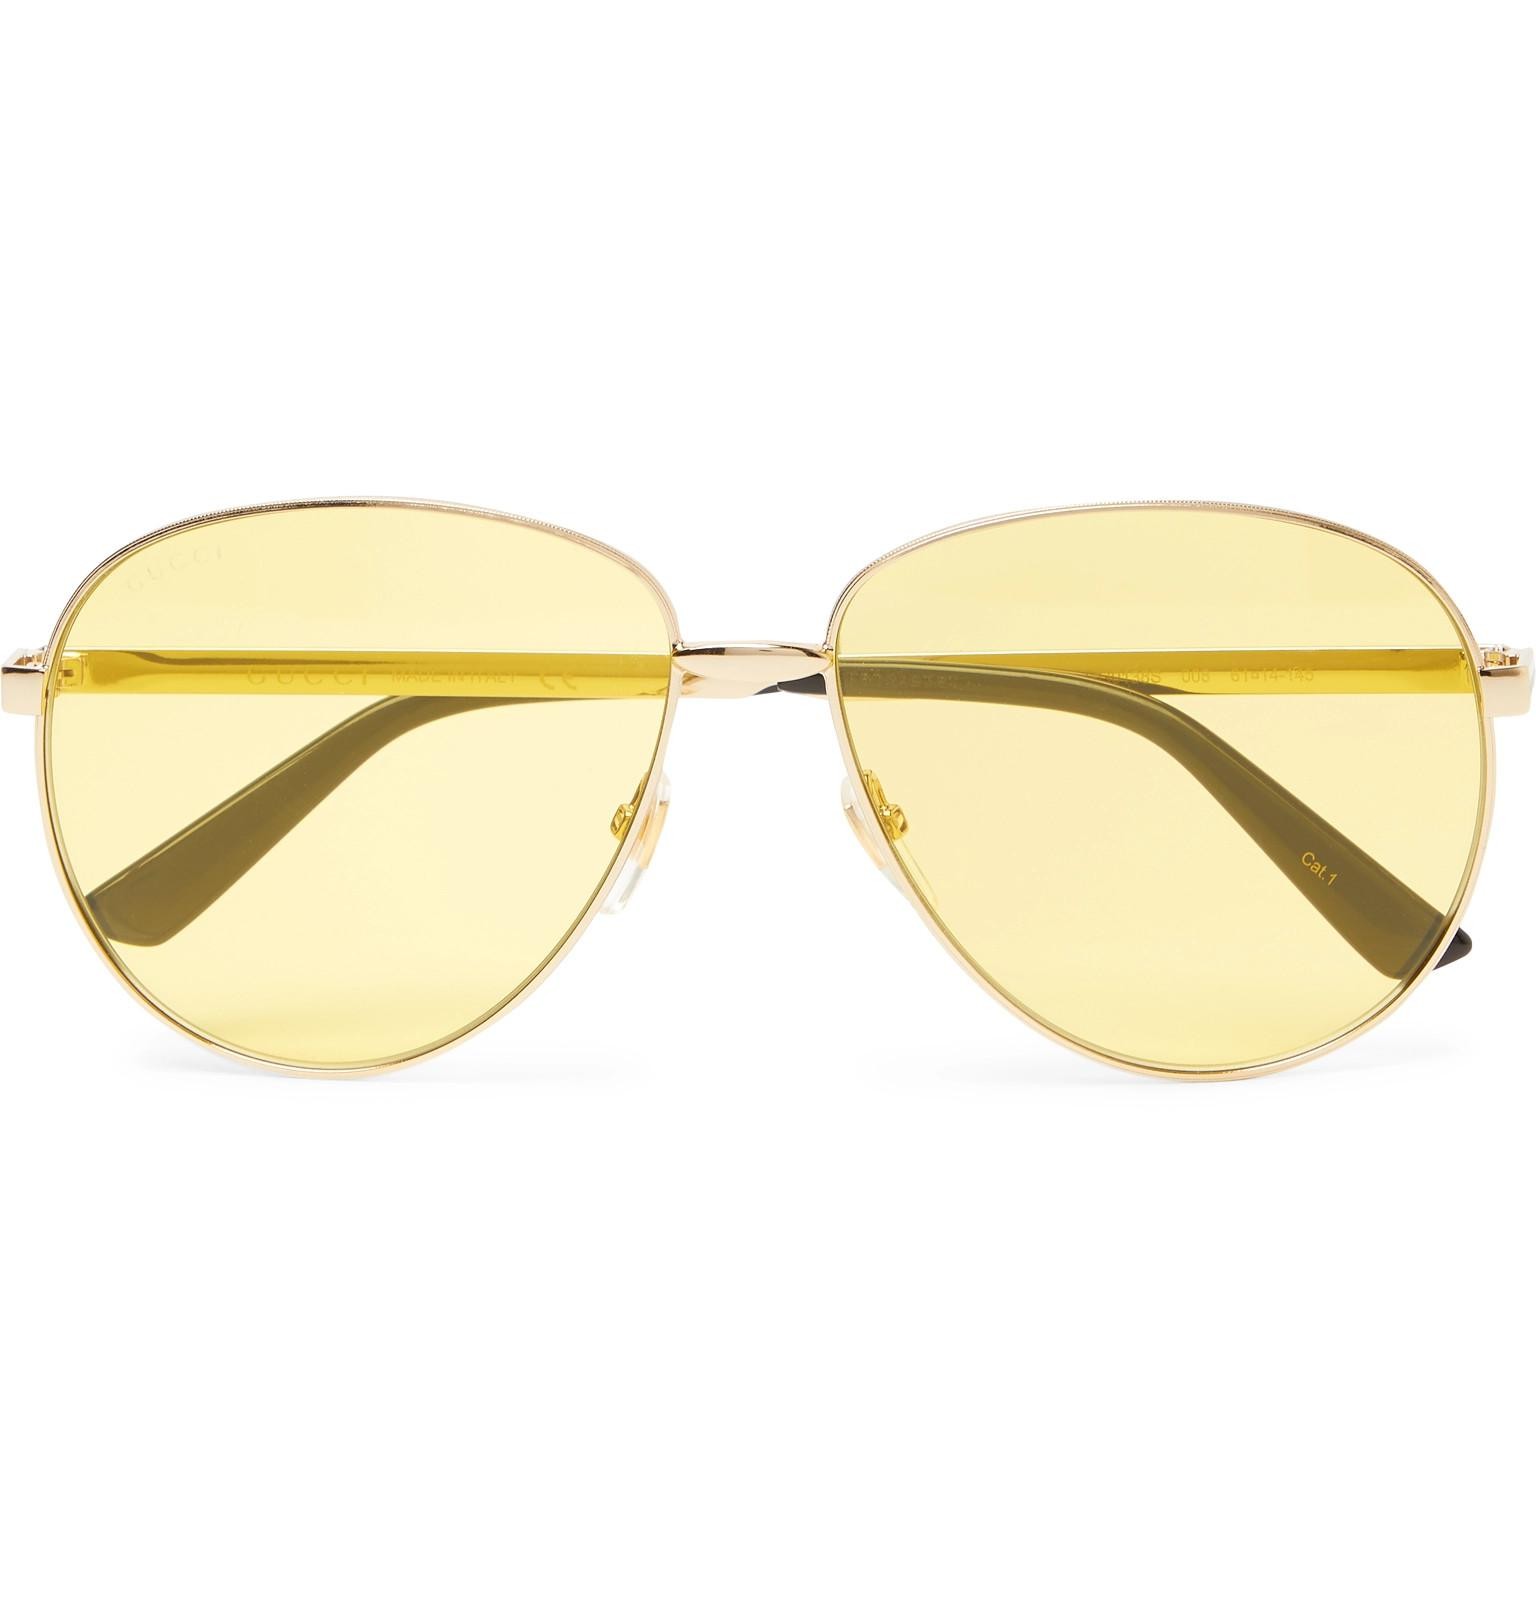 34cbbf17a63 Lyst - Gucci Aviator-style Gold-tone Sunglasses in Metallic for Men